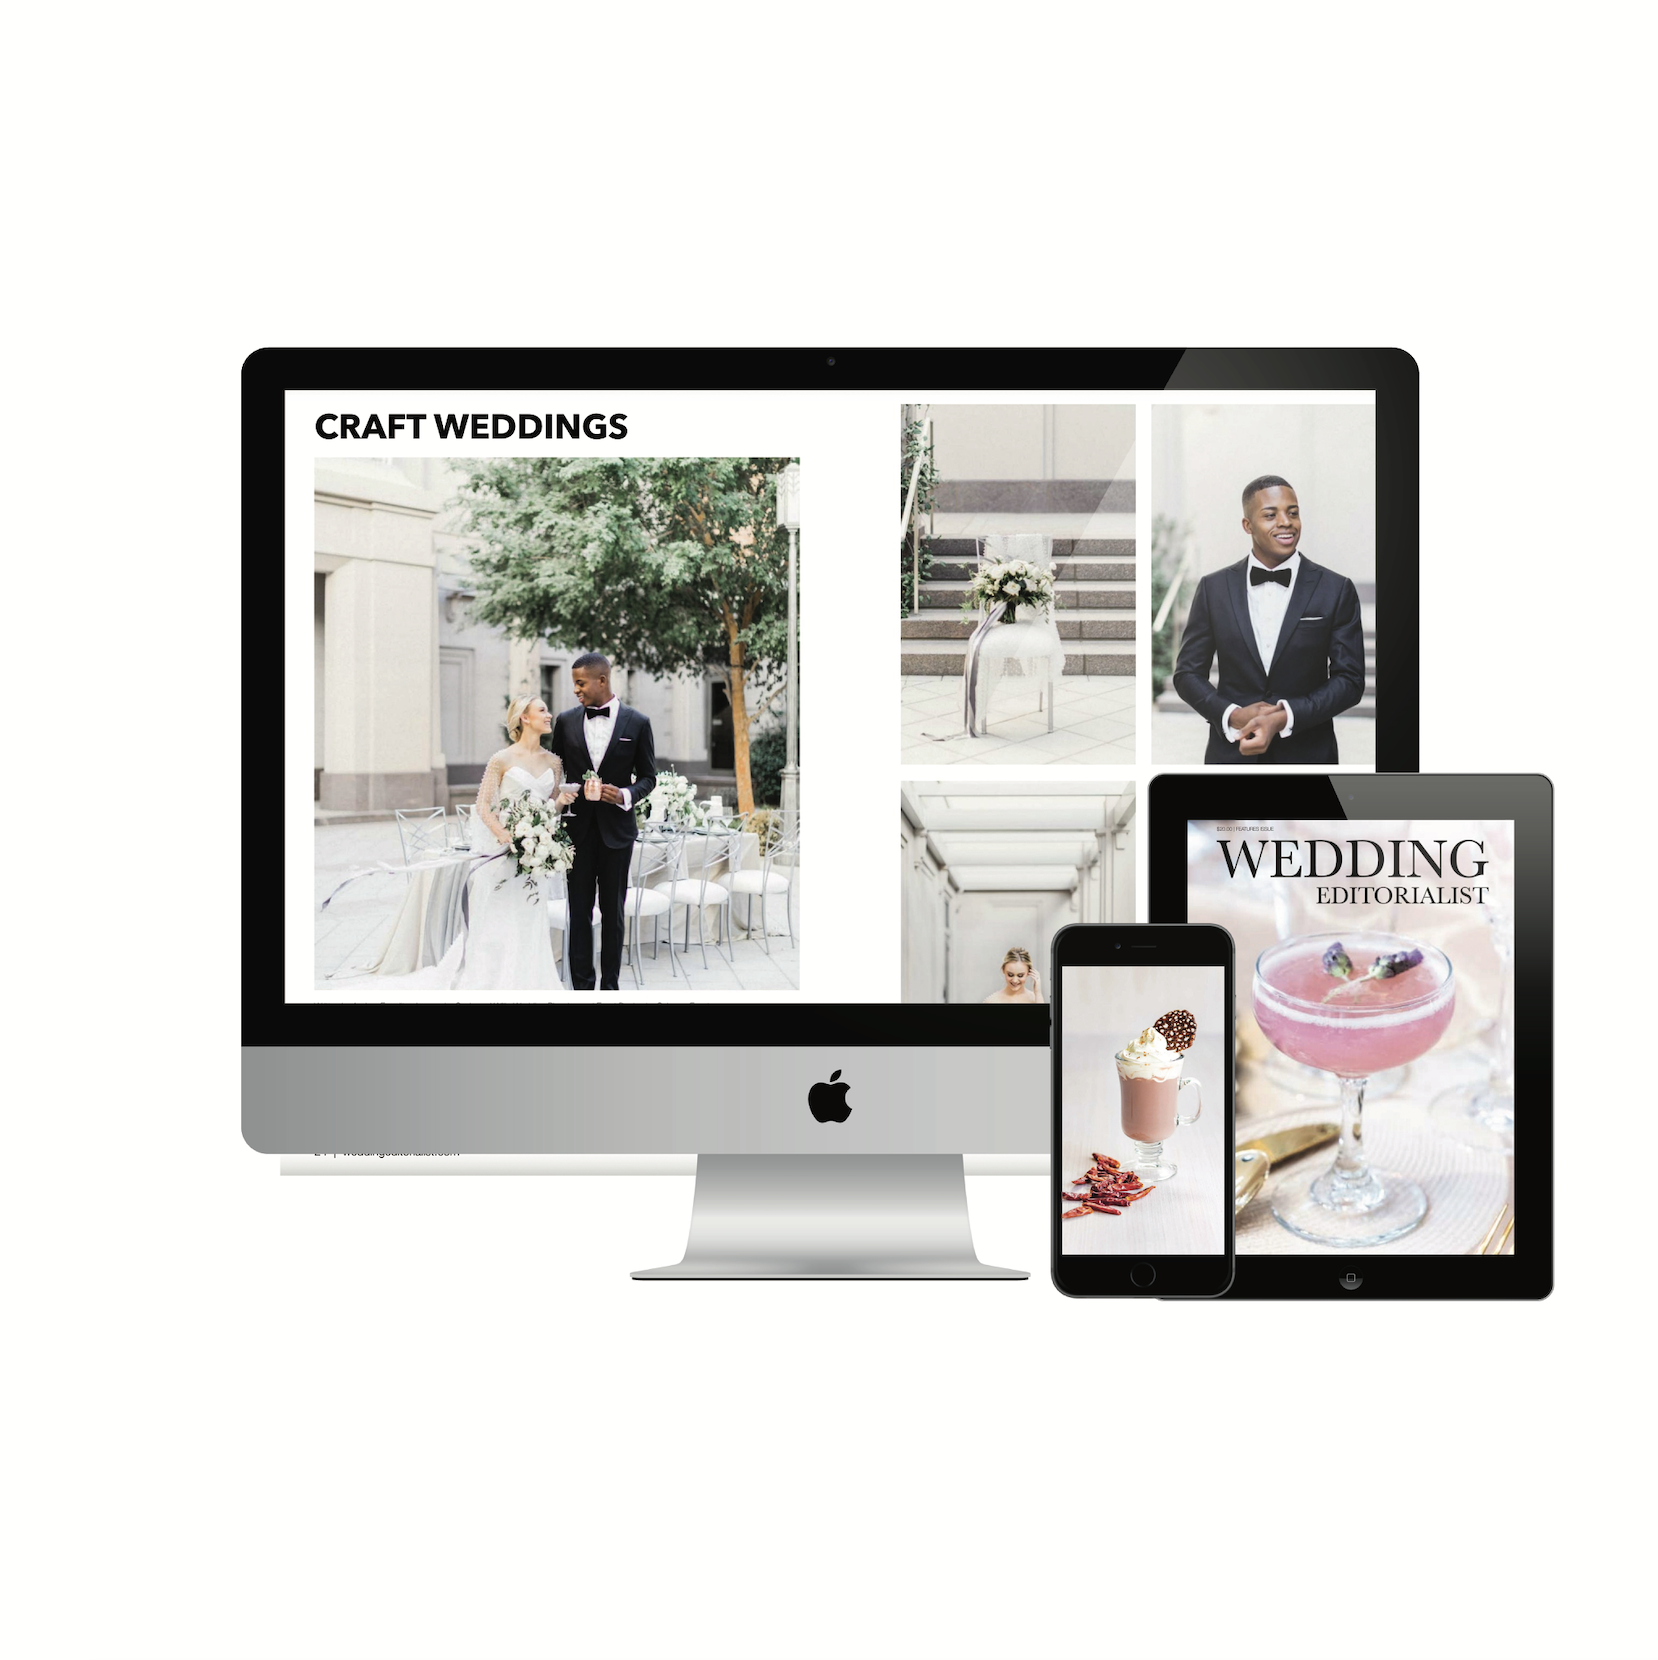 Custom wedding magazines you can read on your desktop, laptop, mobile phone and tablet. www.weddingeditorialist.com